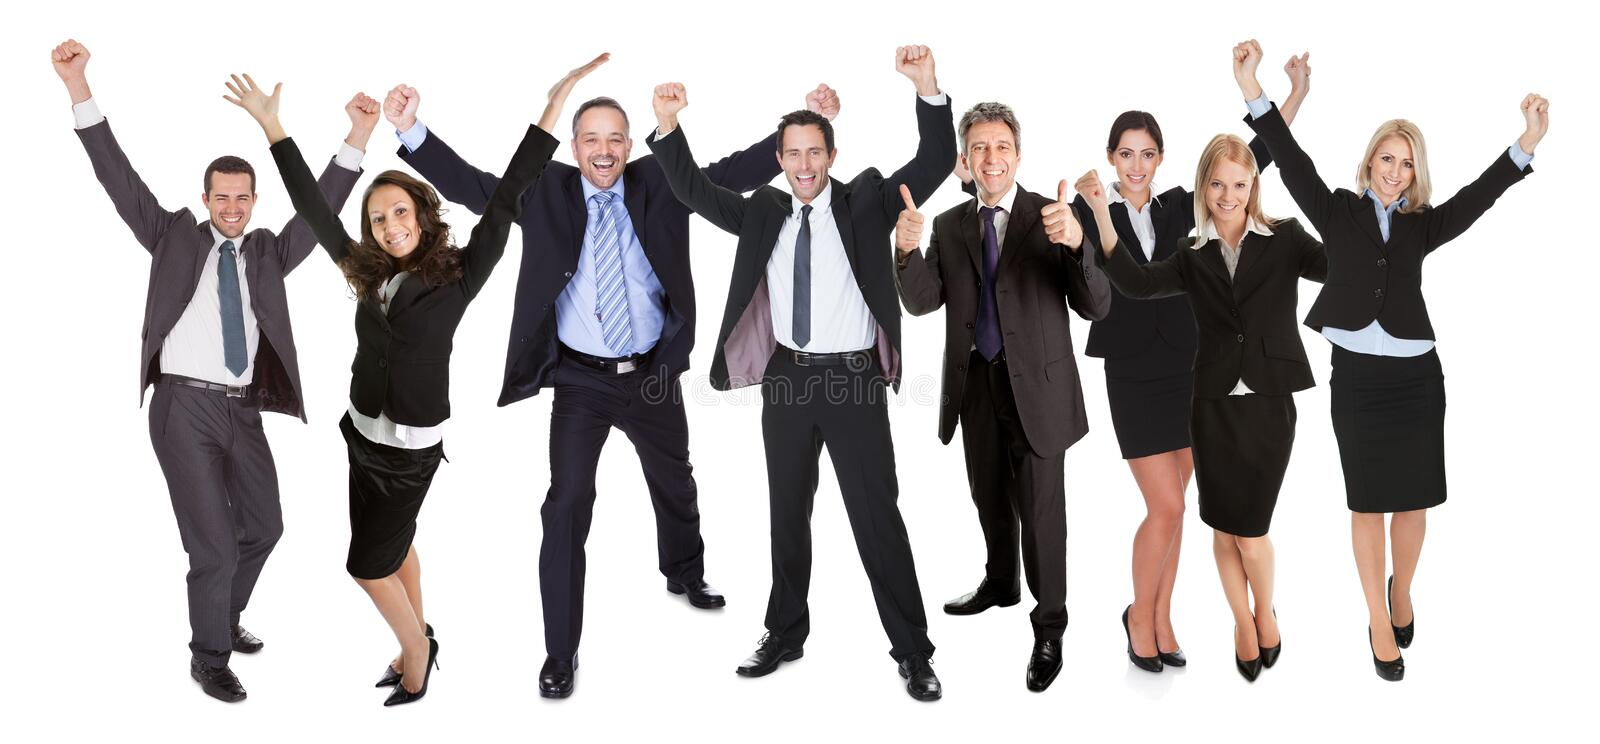 Download Group Of People Excited Business People Stock Image - Image: 29378459